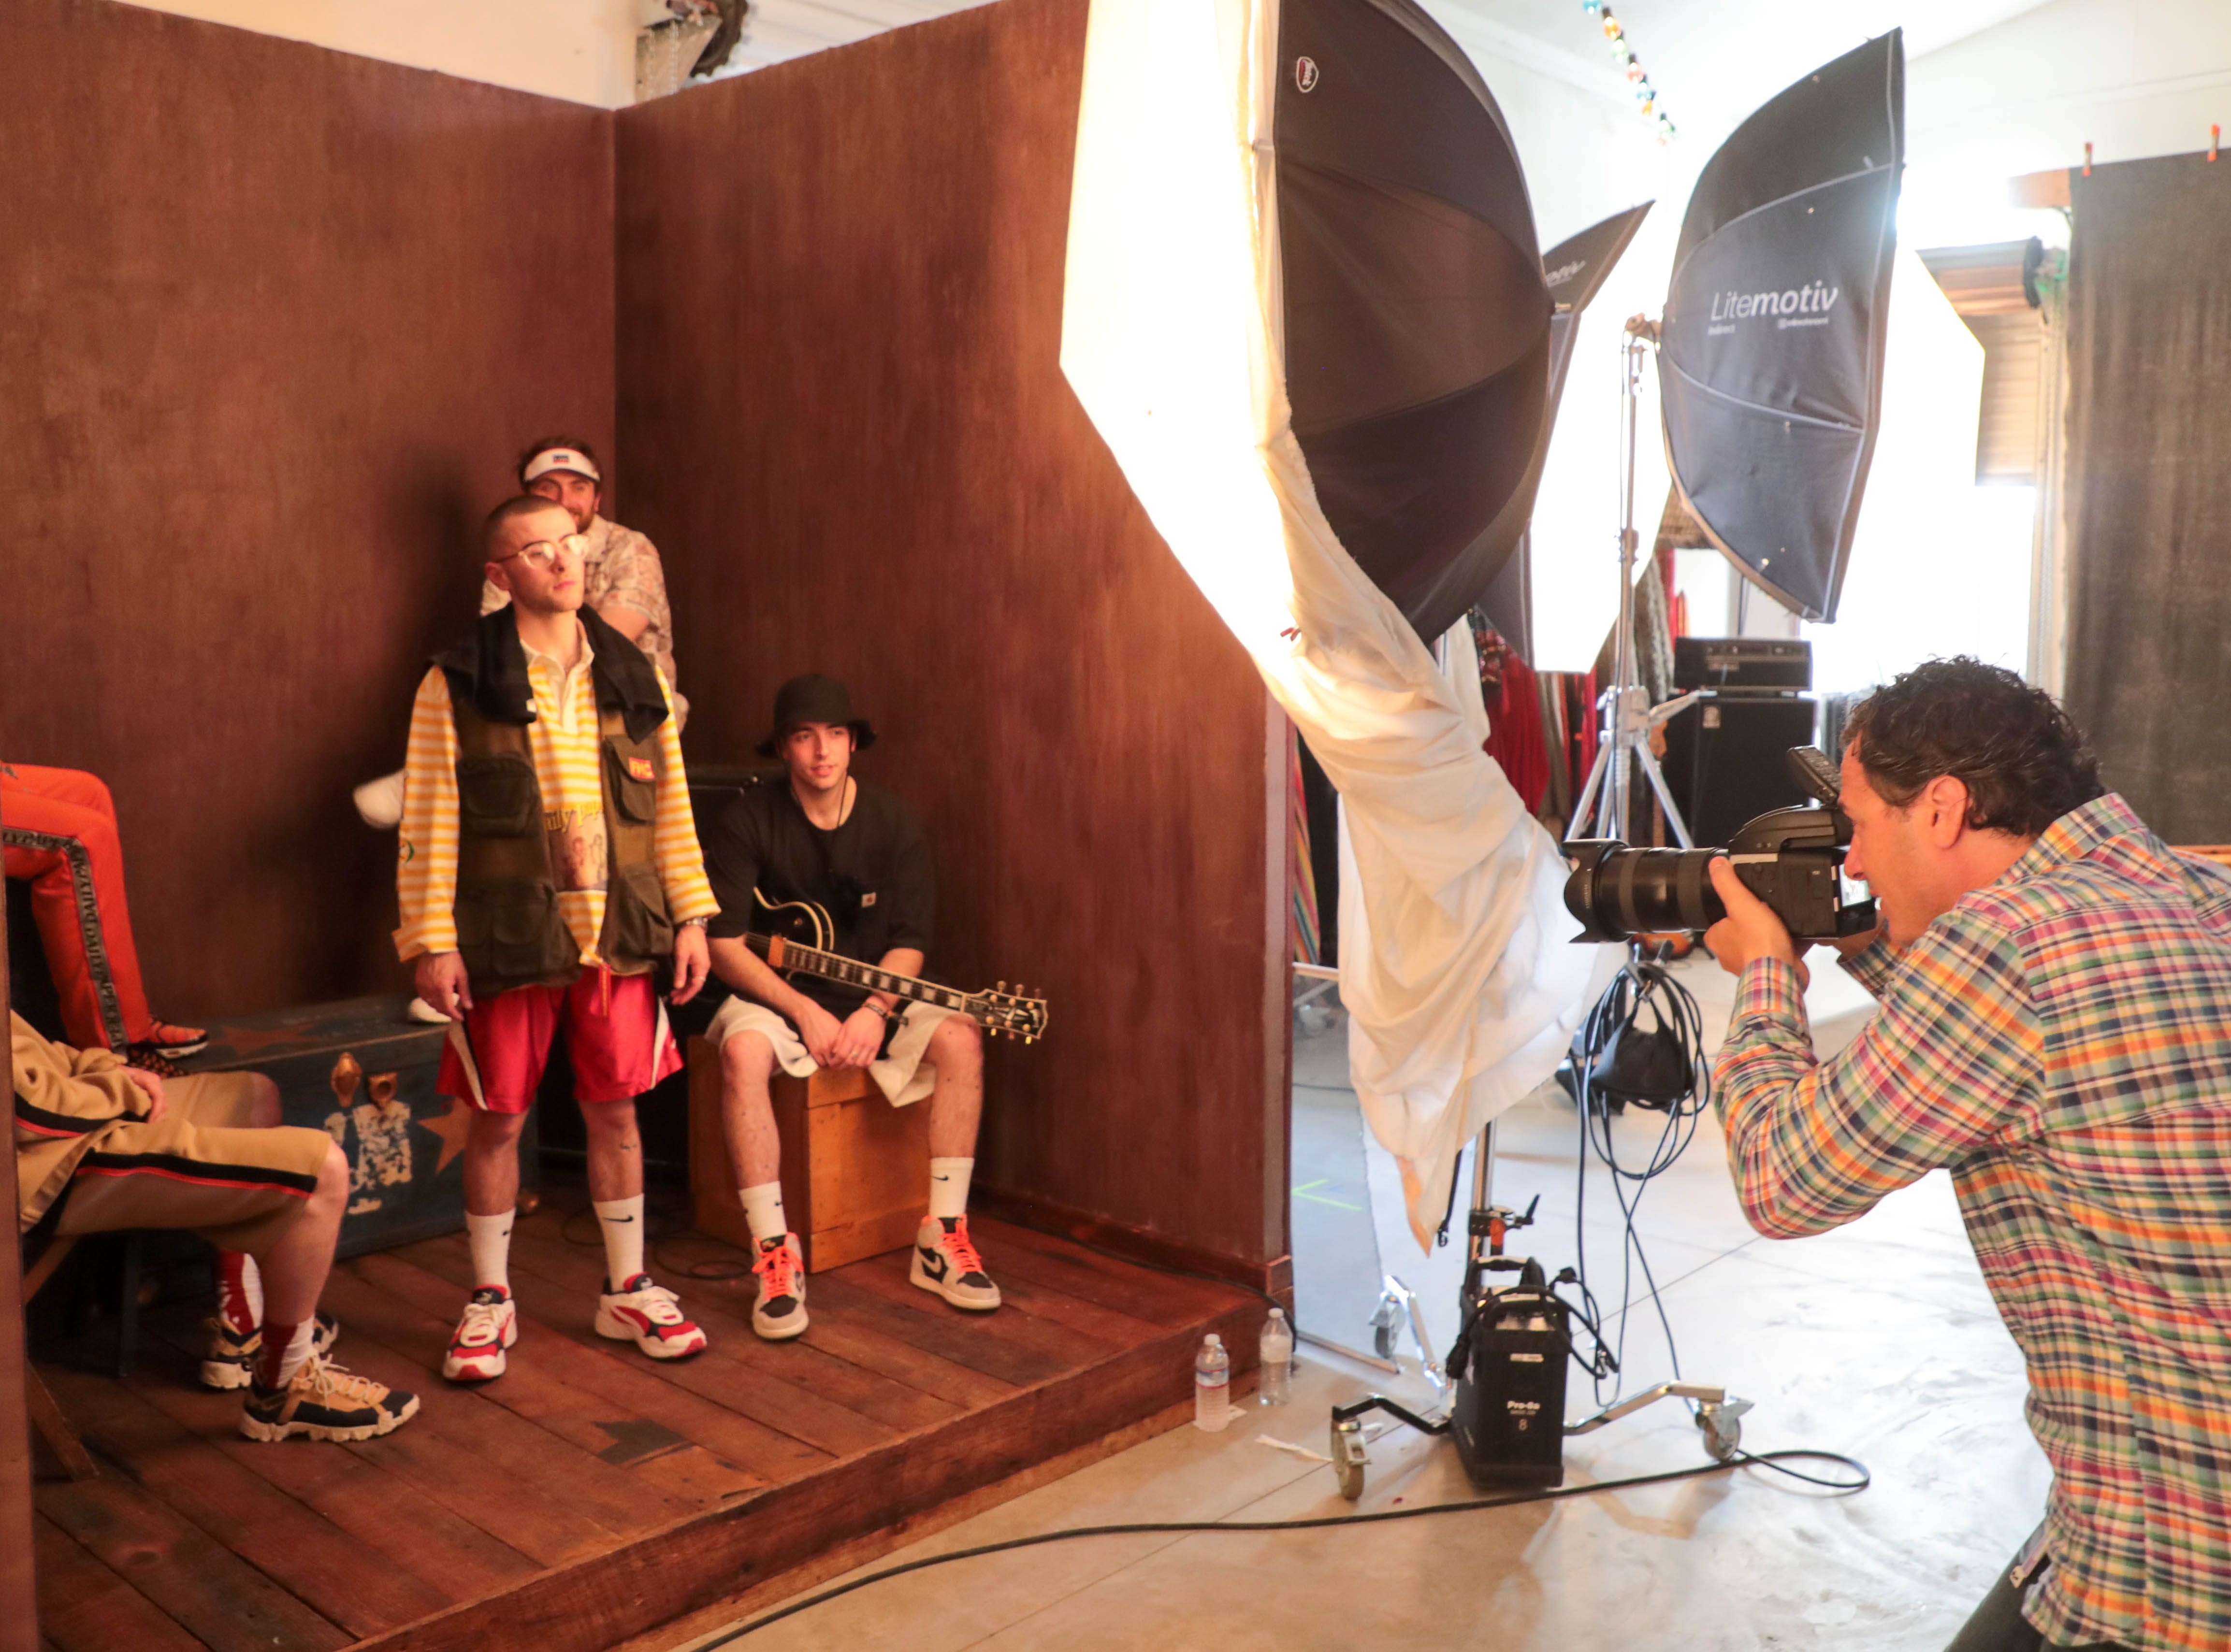 Andrew Haagen photographs Easy Life in his 'Artist Photo Tent' on Sunday, April 15, 2019 at the Coachella Valley Music and Arts Festival in Indio, Calif.